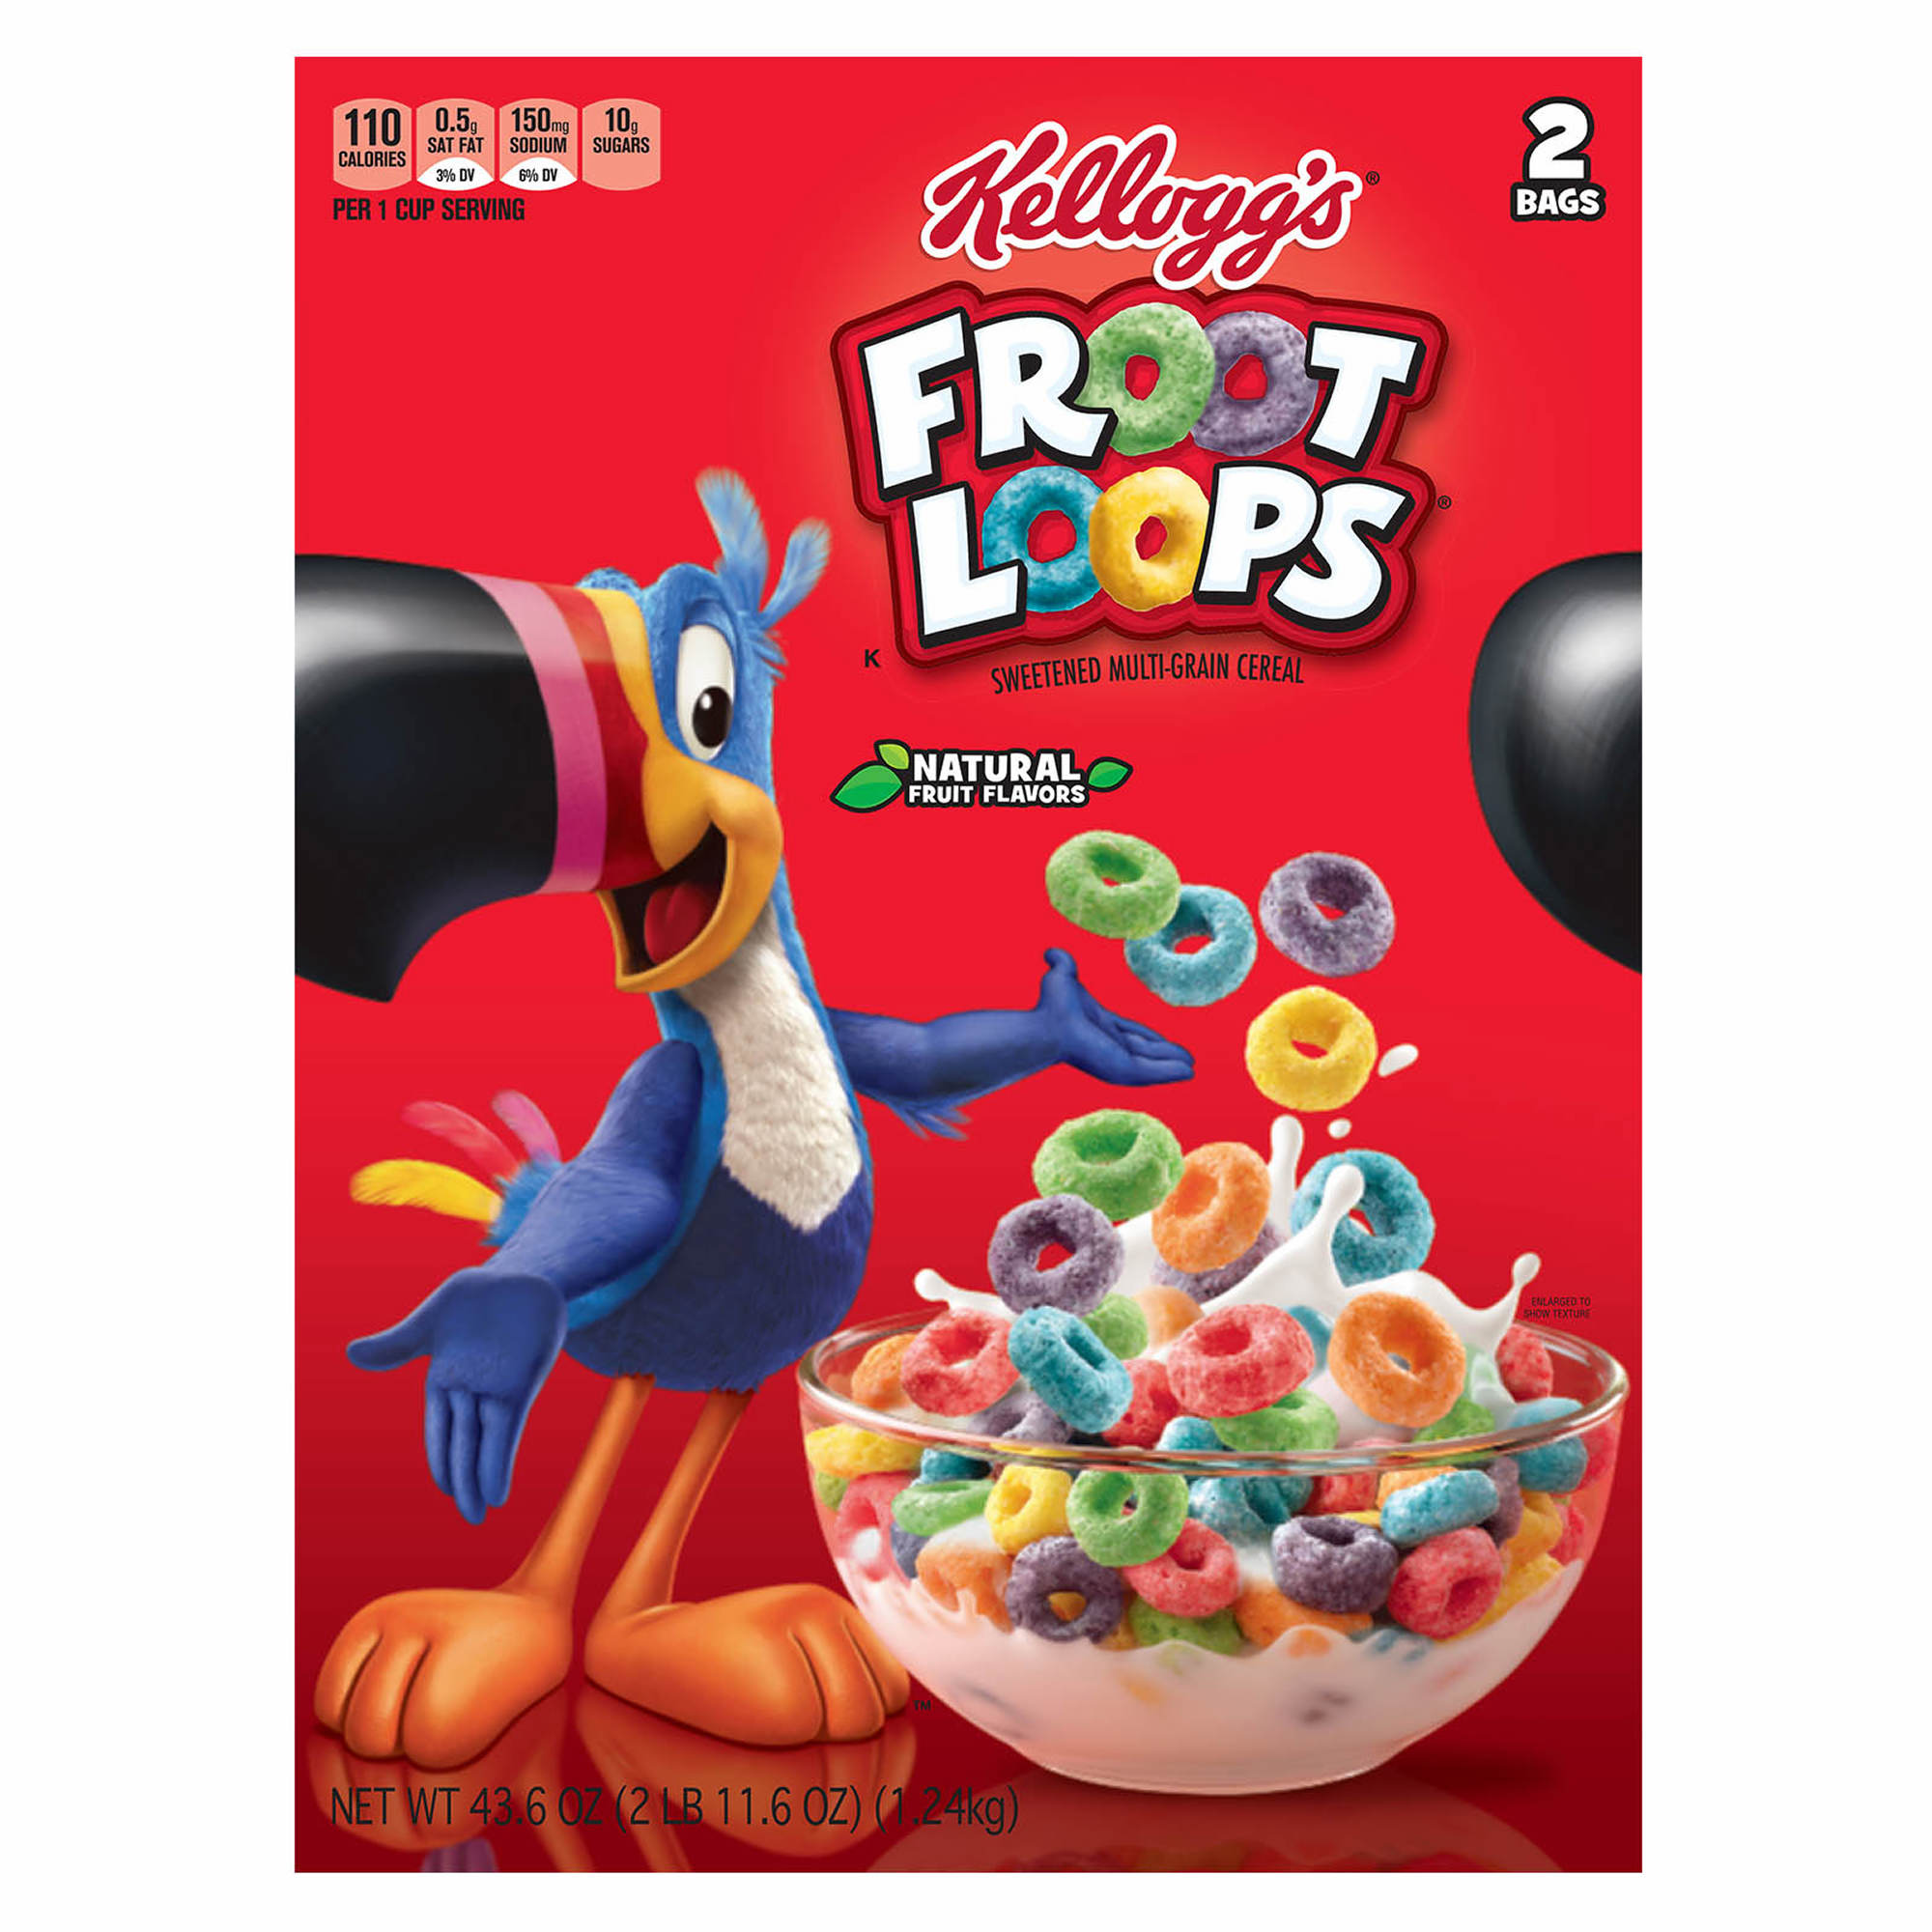 fruit loops Froot loops is a brand of sweetened, fruit-flavored breakfast cereal produced by kellogg's and sold in many countries the cereal pieces are ring-shaped (hence loops) and come in a variety of bright colors and a blend of fruit flavors (hence froot, a cacography of fruit).